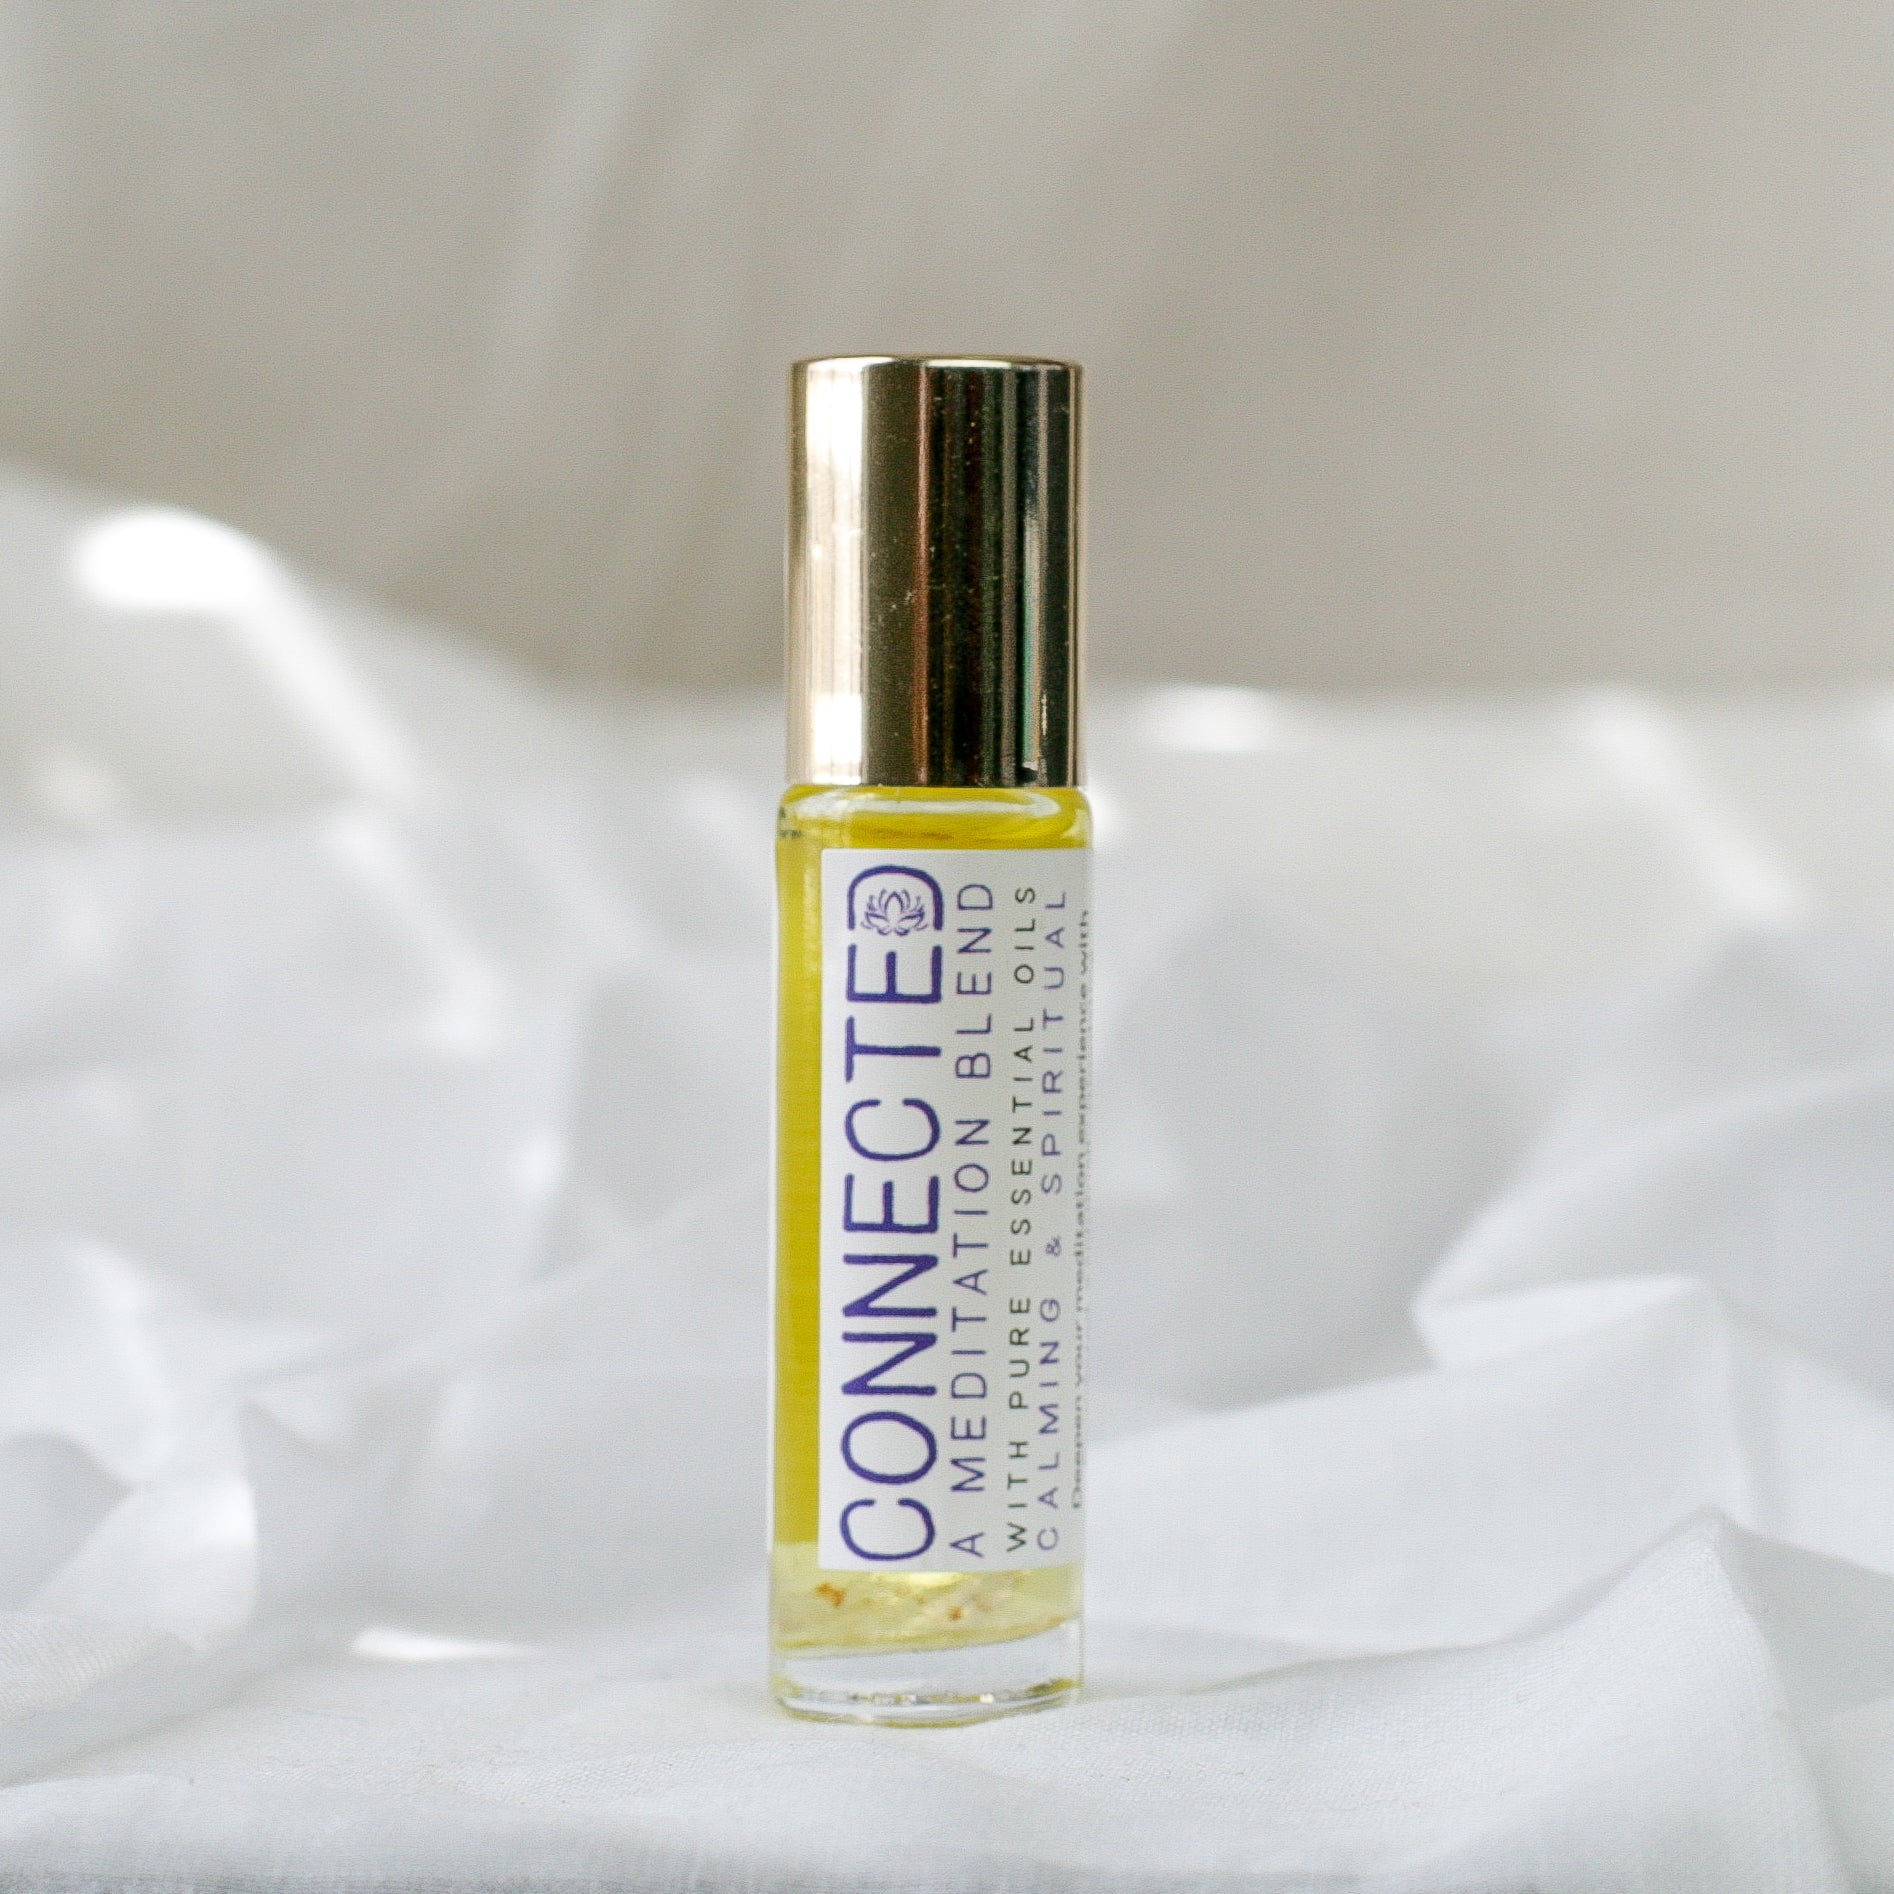 Connected - Aromatherapy Roll-On